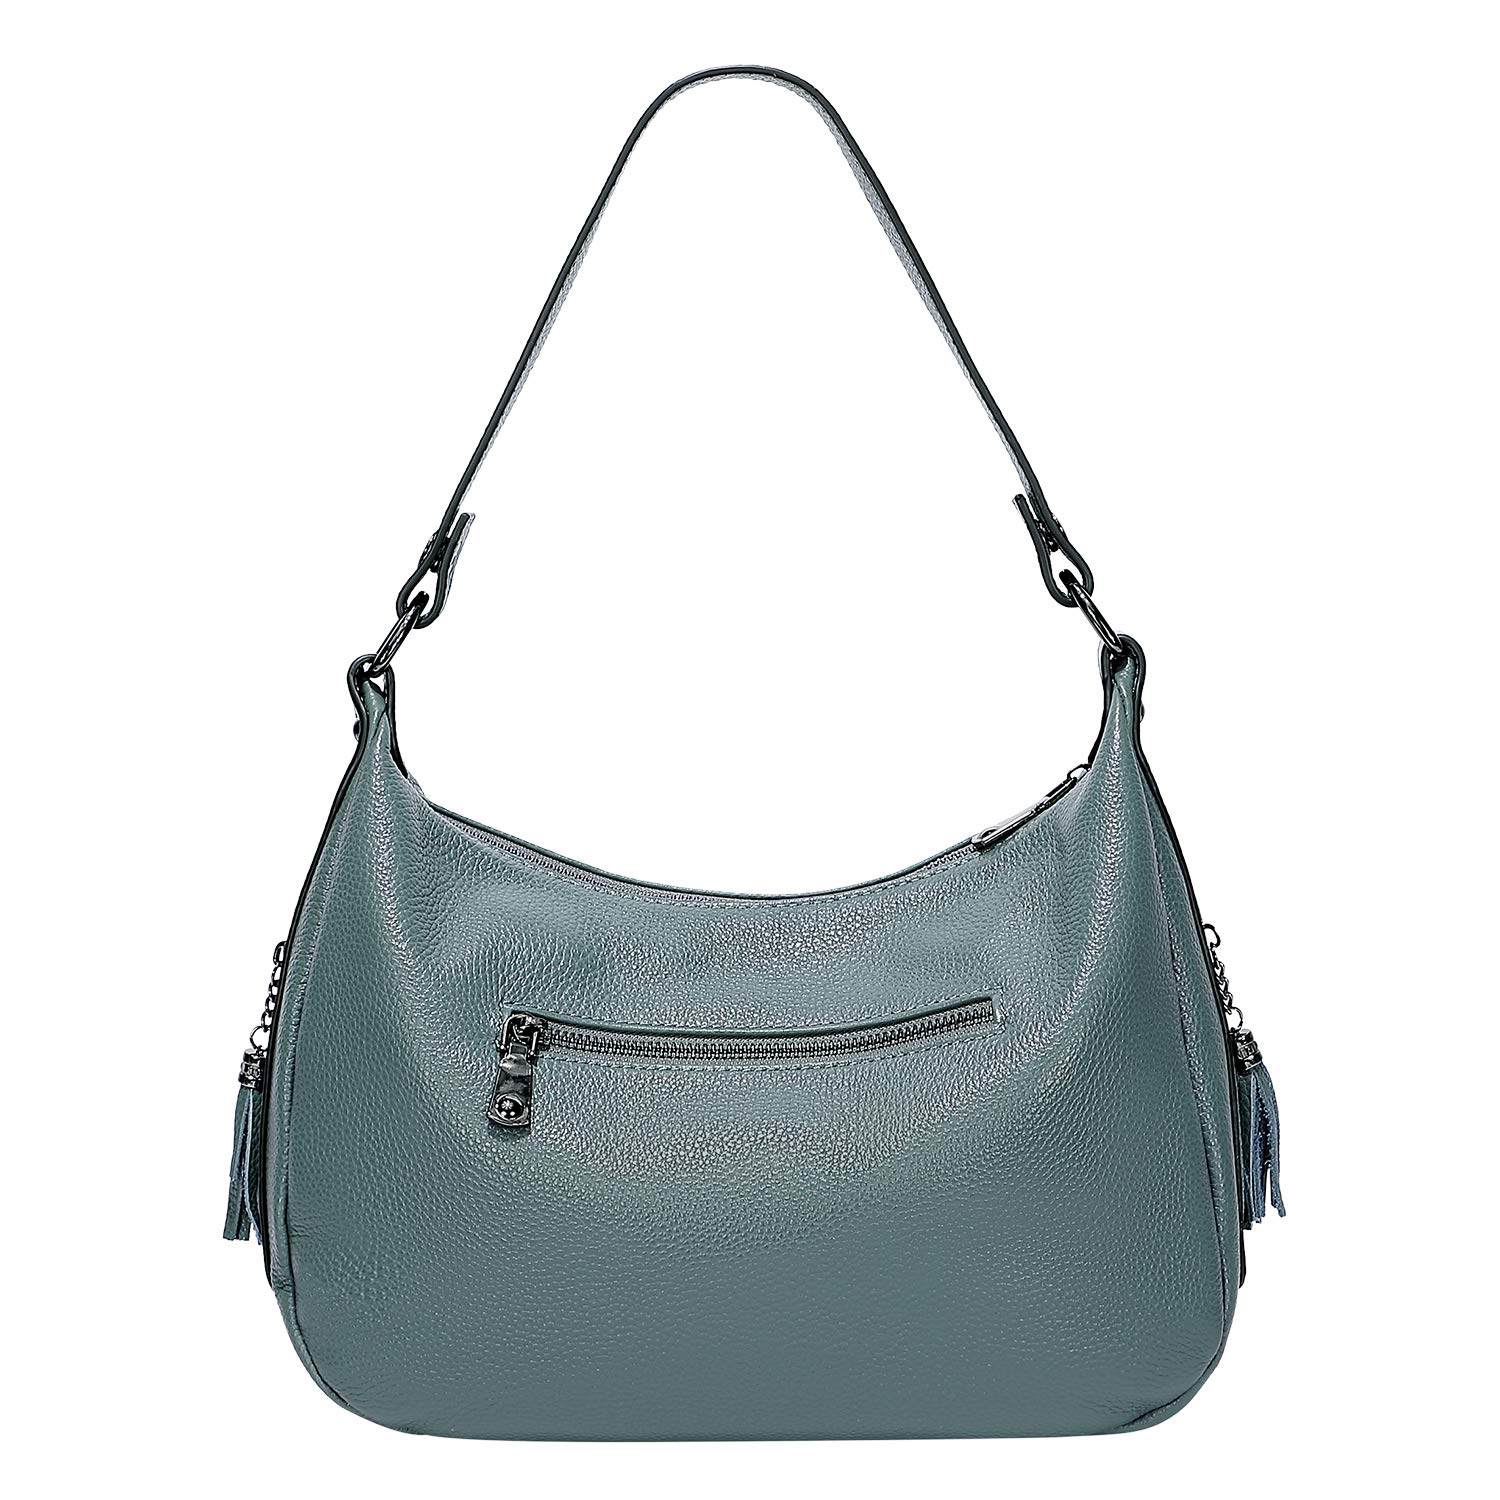 OVER EARTH Womens Handbags Soft Leather Hobo Shoulder Bag Ladies Crossbody Tote Purses with Tassel